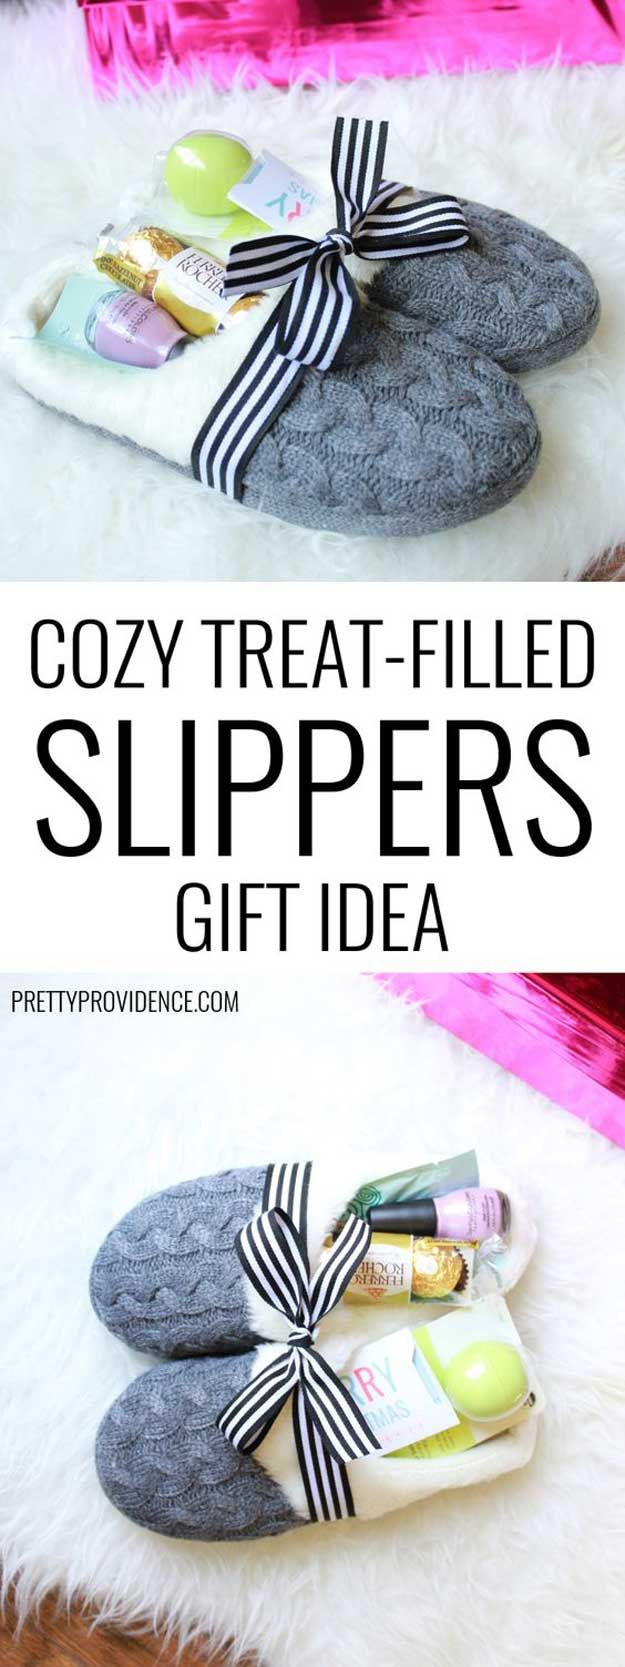 Best ideas about Fun Gift Ideas For Girlfriends . Save or Pin Cute Gifts to Make For Her Now.